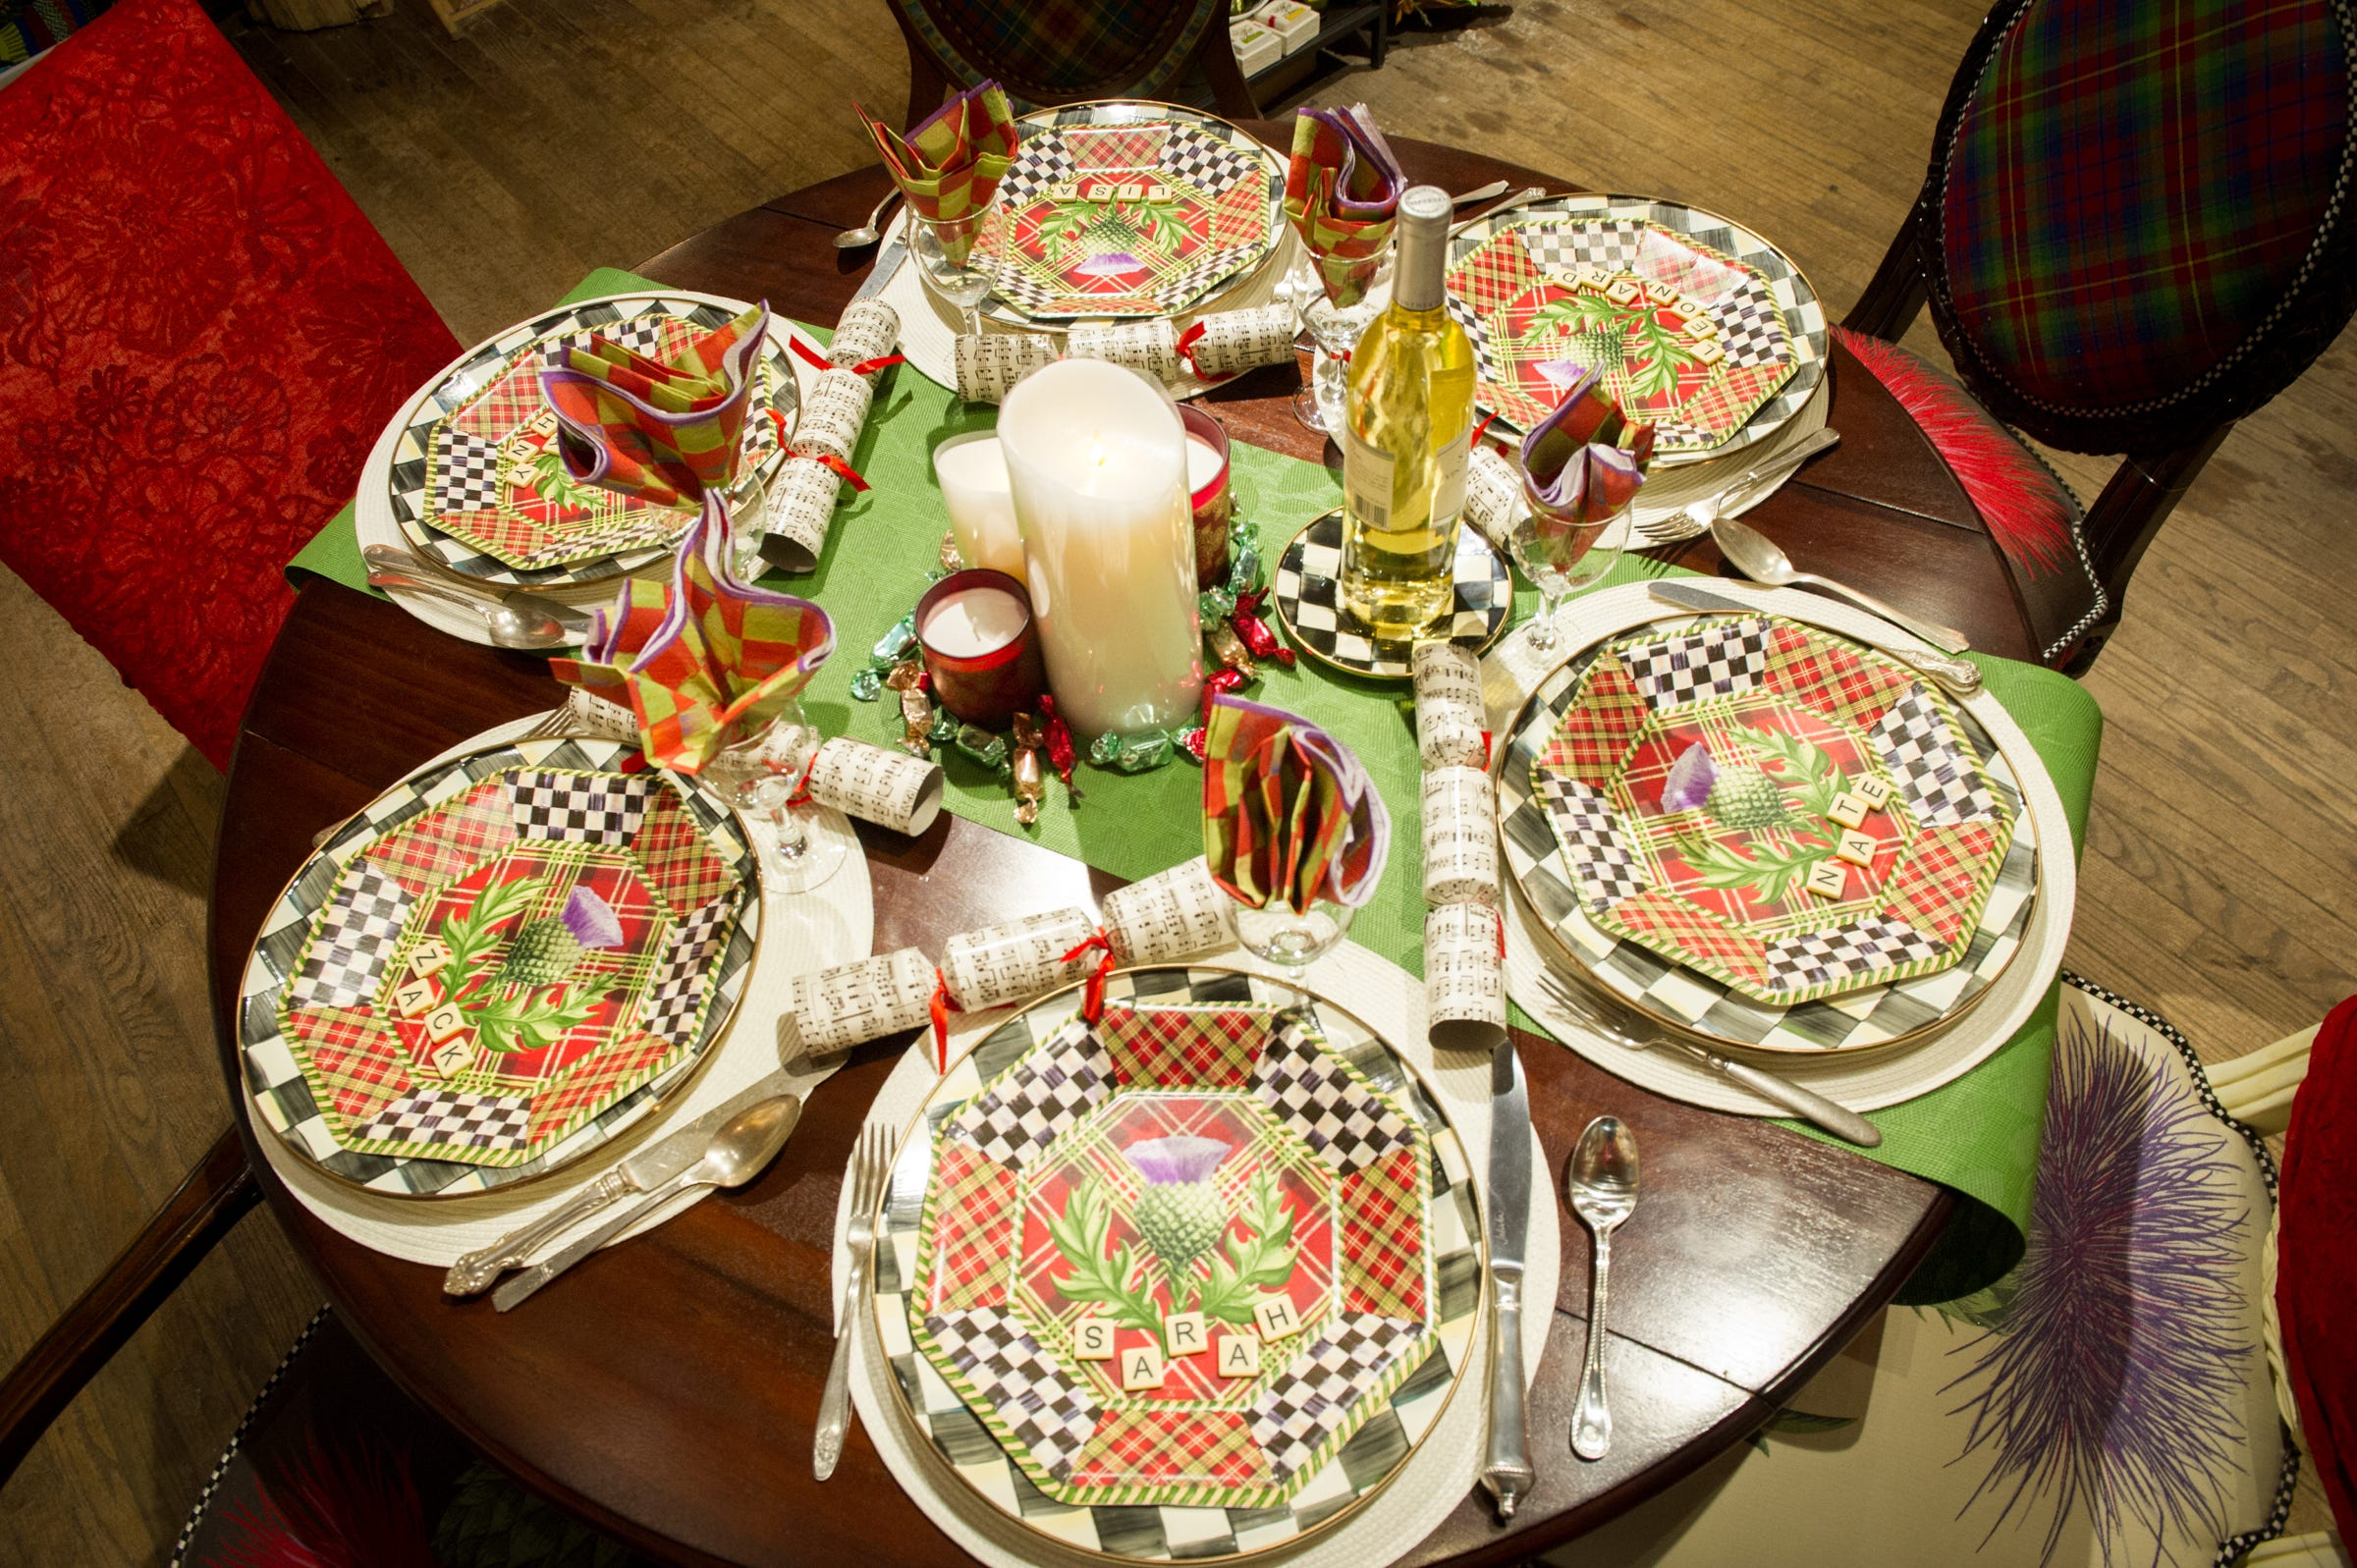 It\u0027s okay to use paper plates to stay within your budget. Just place a colorful runner on the table and set a charger plate (or platter) under each dinner ... & A beautiful holiday table doesn\u0027t have to be expensive